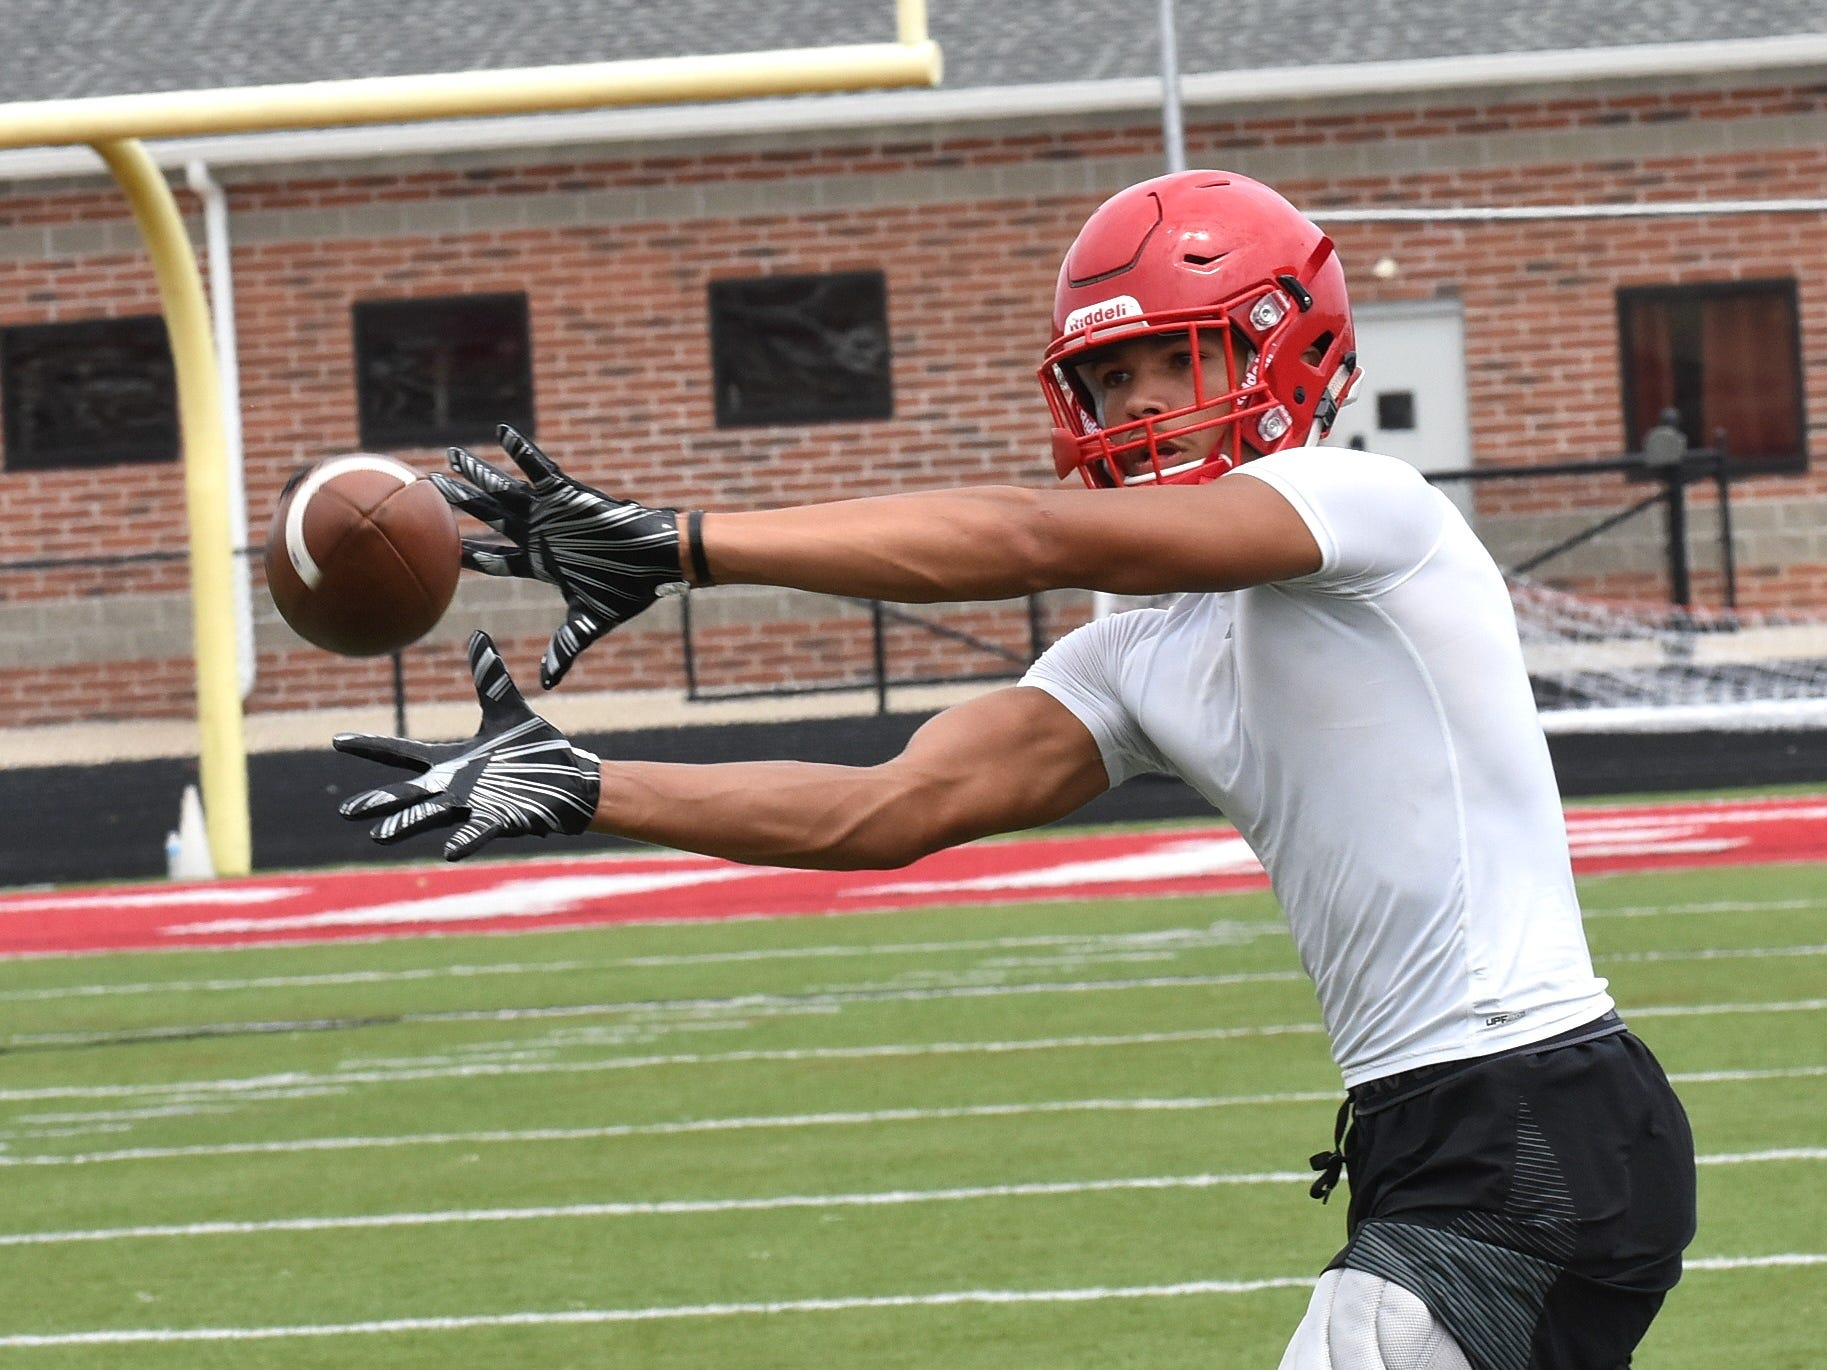 Erick All, Fairfield tight end, pulls in a pass in opening day practice, July 30, 2018.